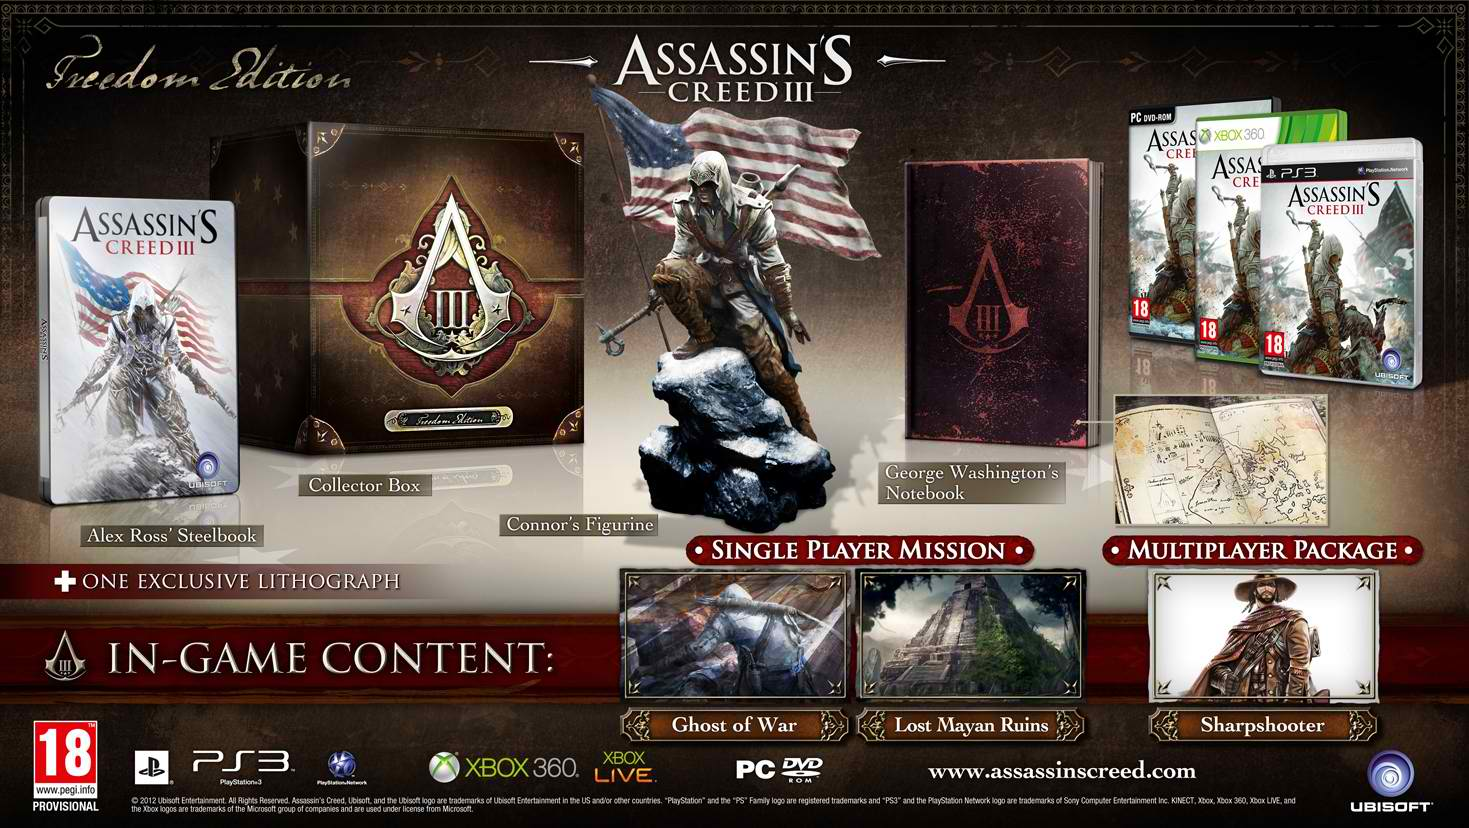 Assassins creed 3 collector's editions details revealed | gameolio.